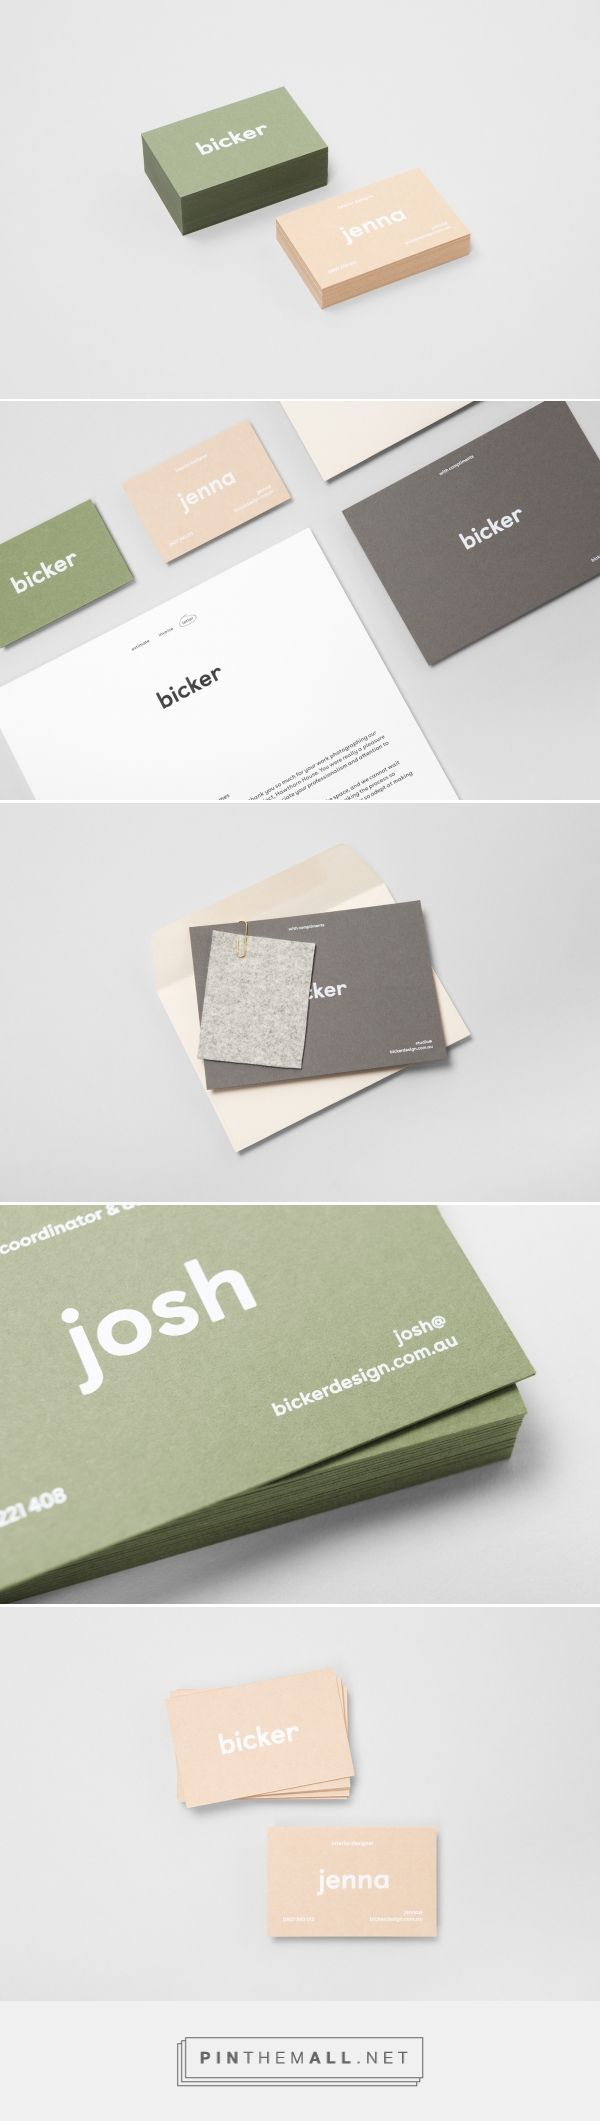 1236 Best Business Card Images On Pinterest Corporate Identity